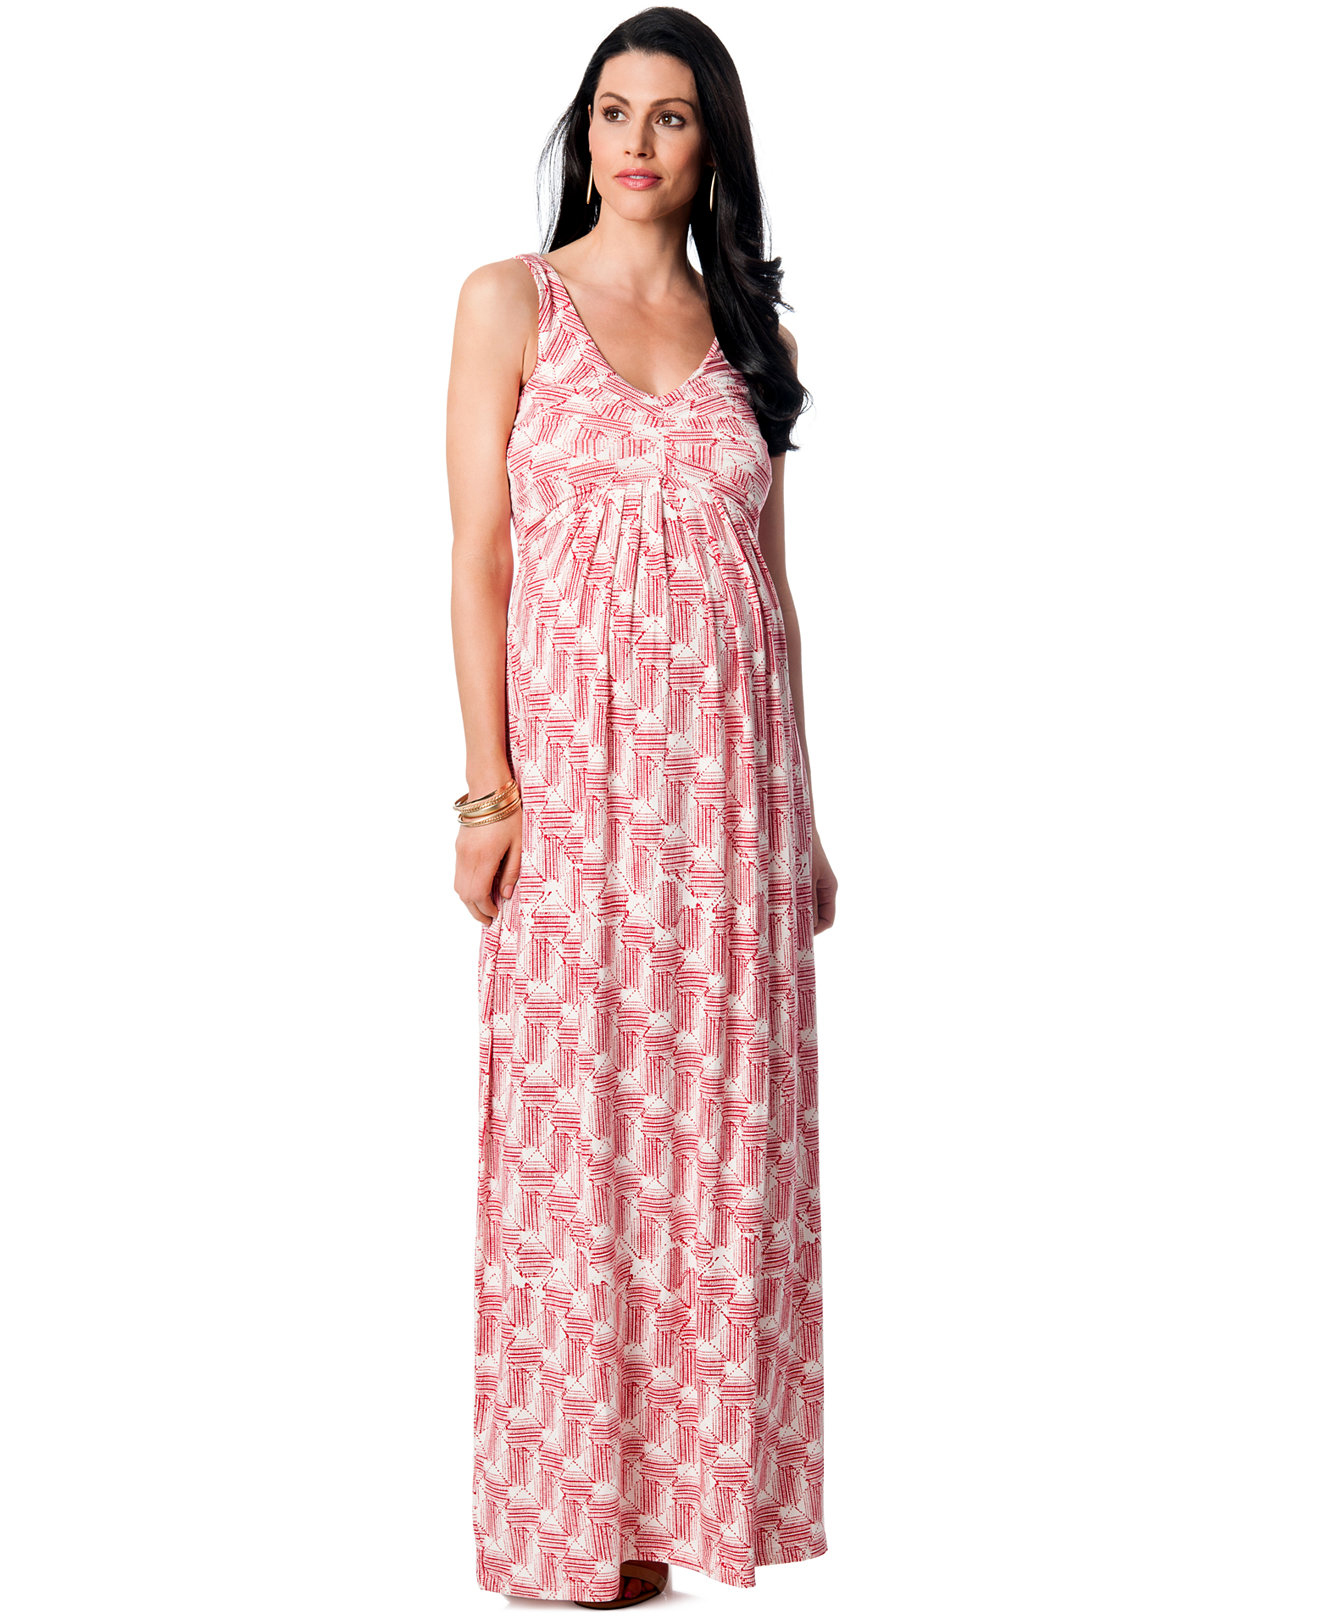 Summer maternity dresses project nursery maternity maxi dress from macys ombrellifo Images